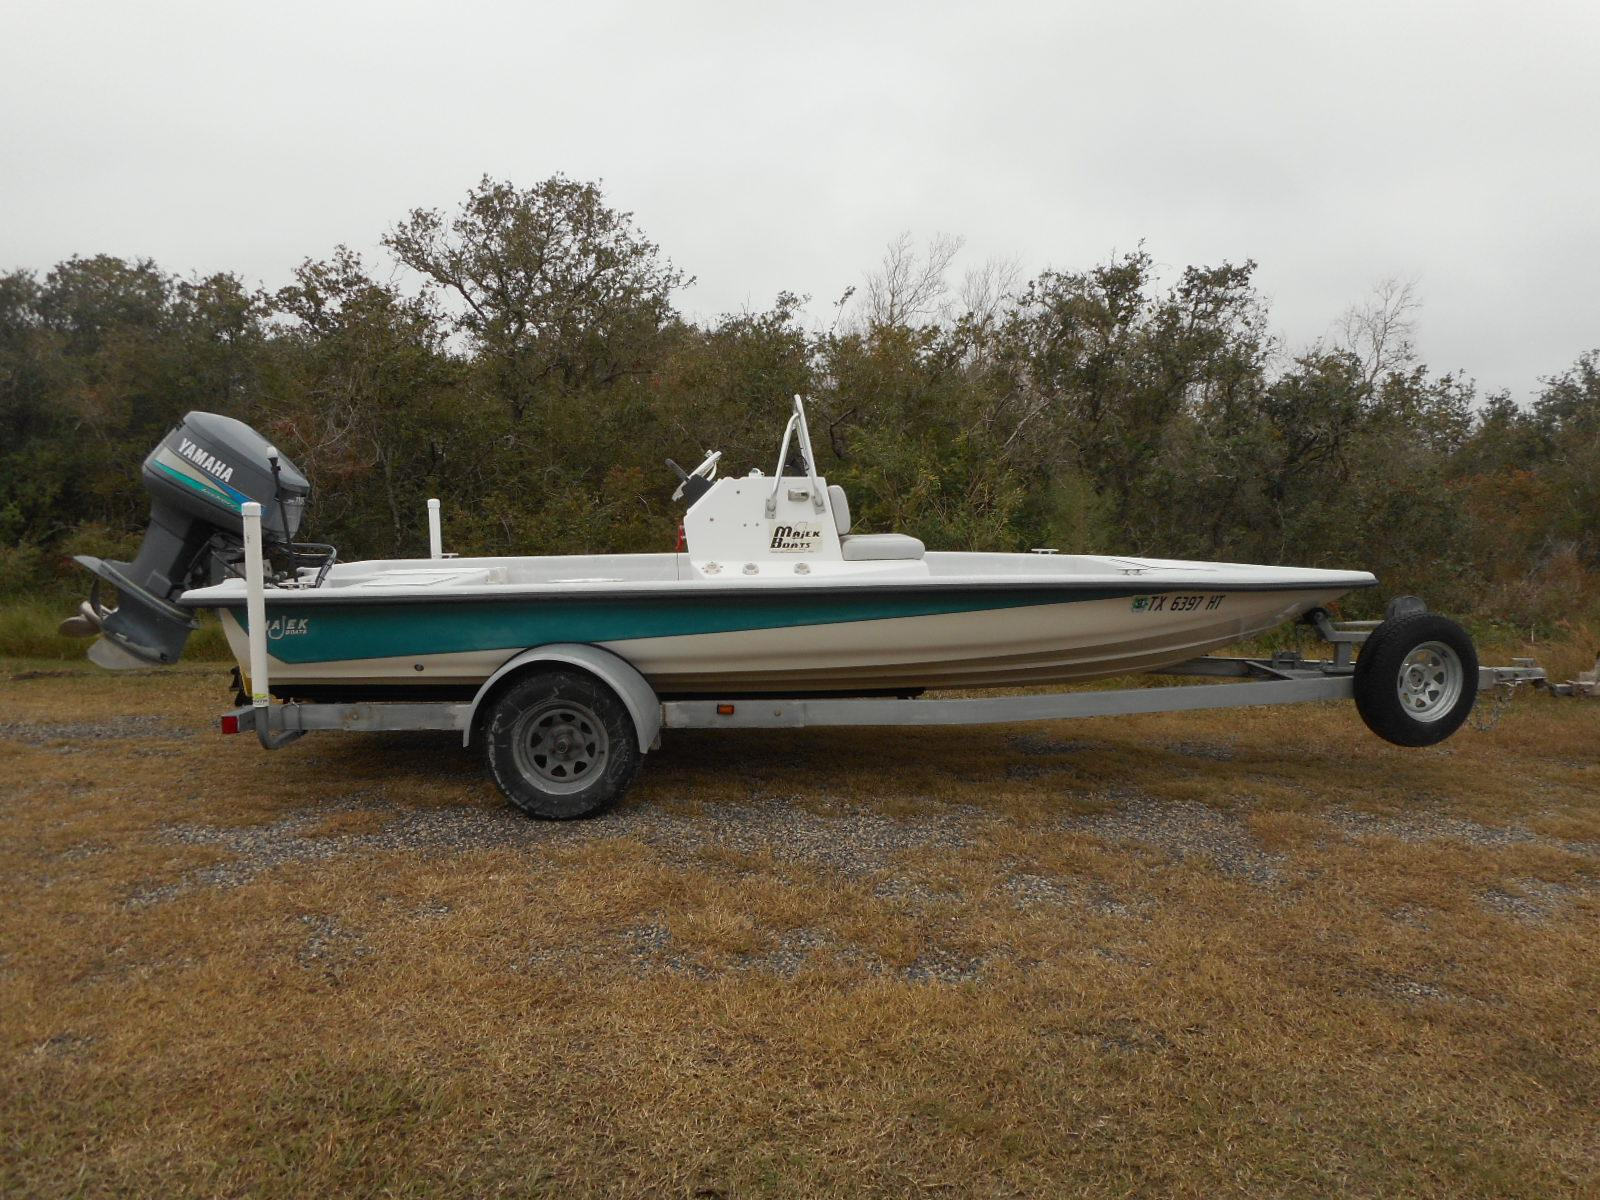 Inventory from Majek and Yamaha Coastal Bend Marine & Auto